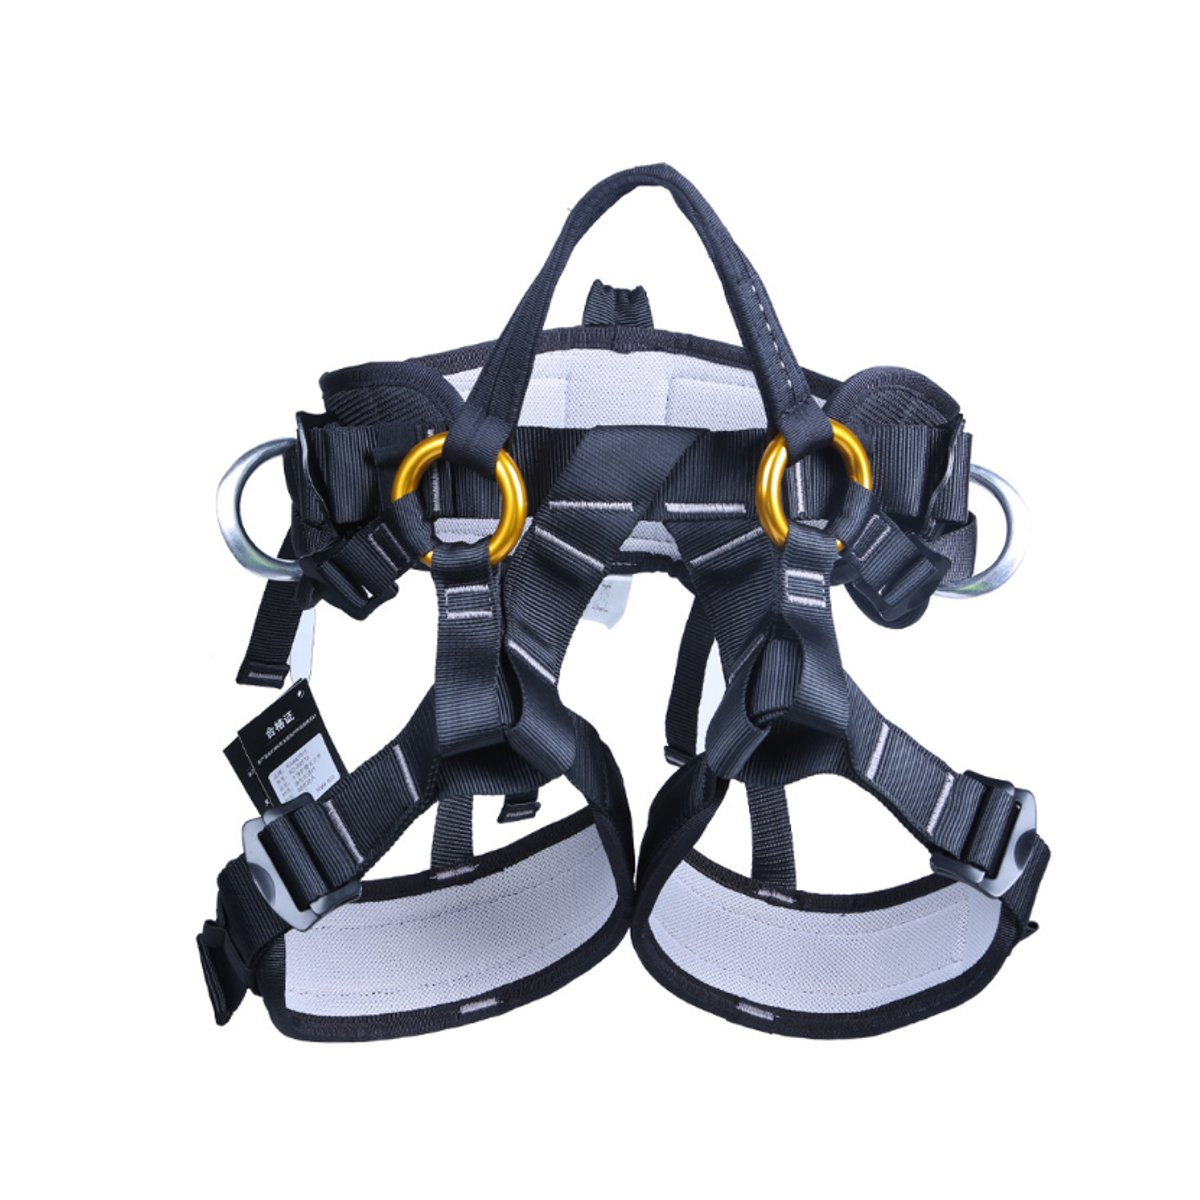 Safety Harness Camping High Altitude Half Body Safety B